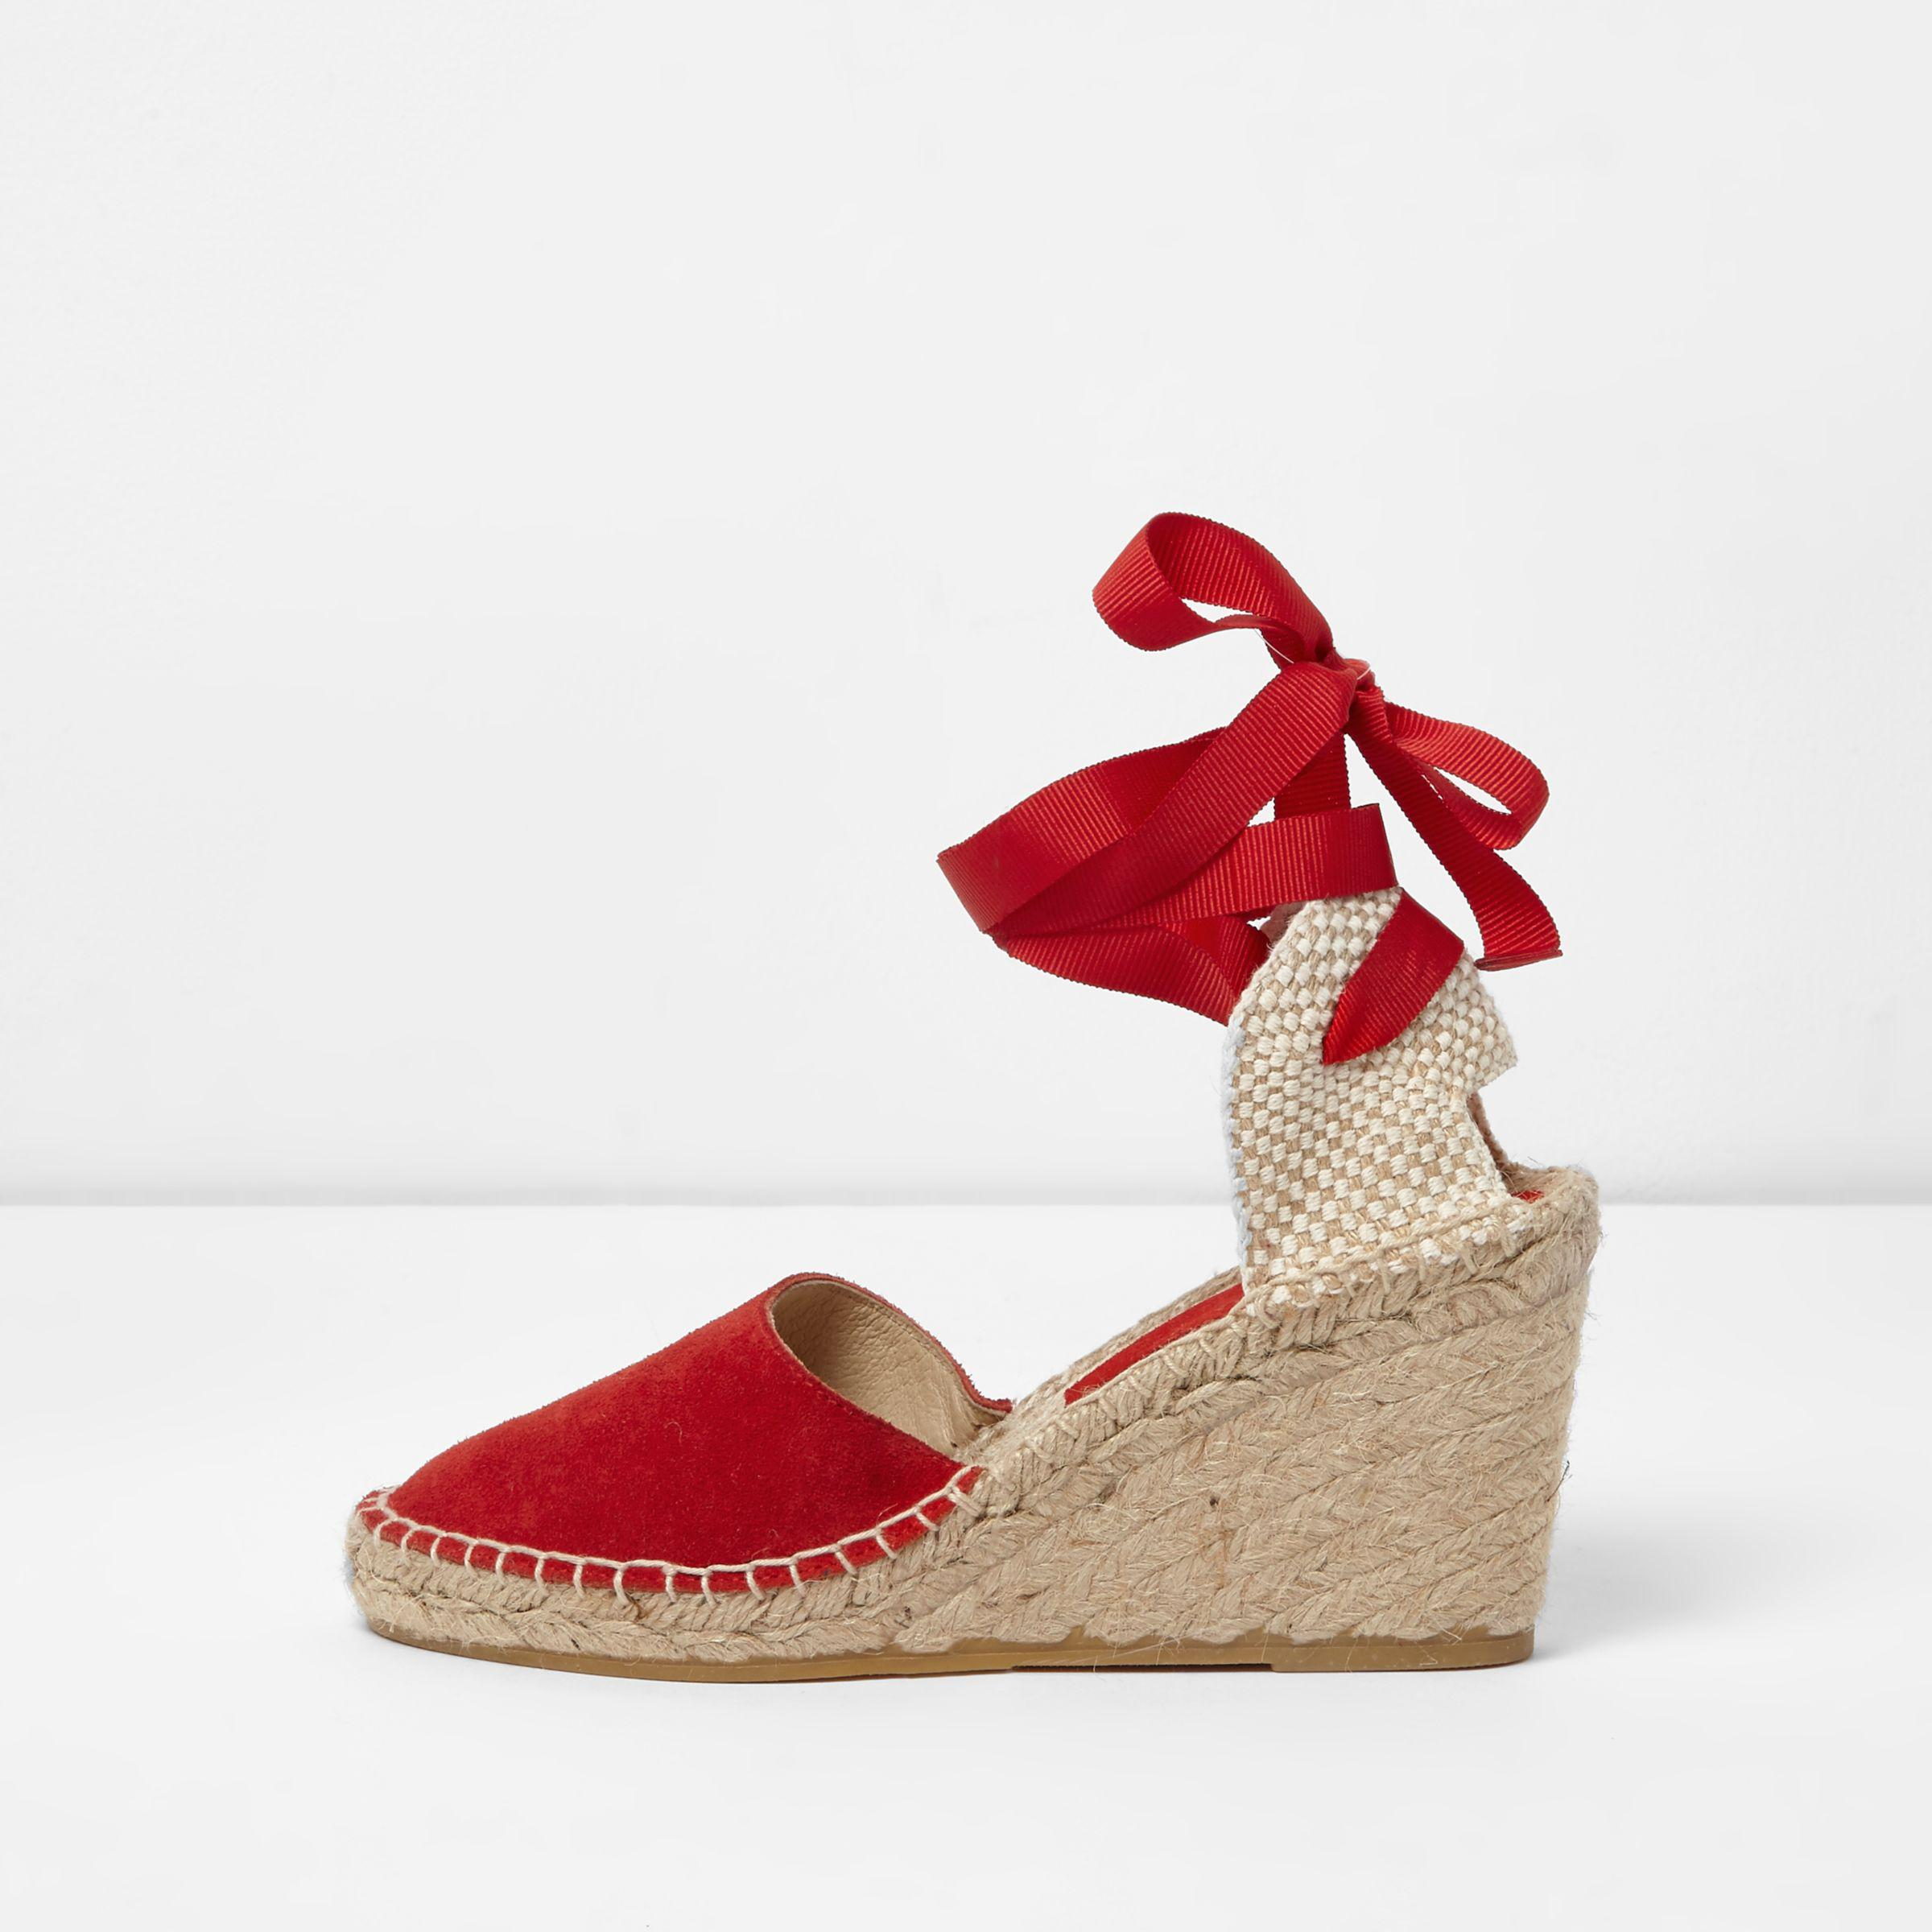 7ccc104367e2 River Island Red Suede Ankle Tie Espadrille Wedges in Red - Lyst